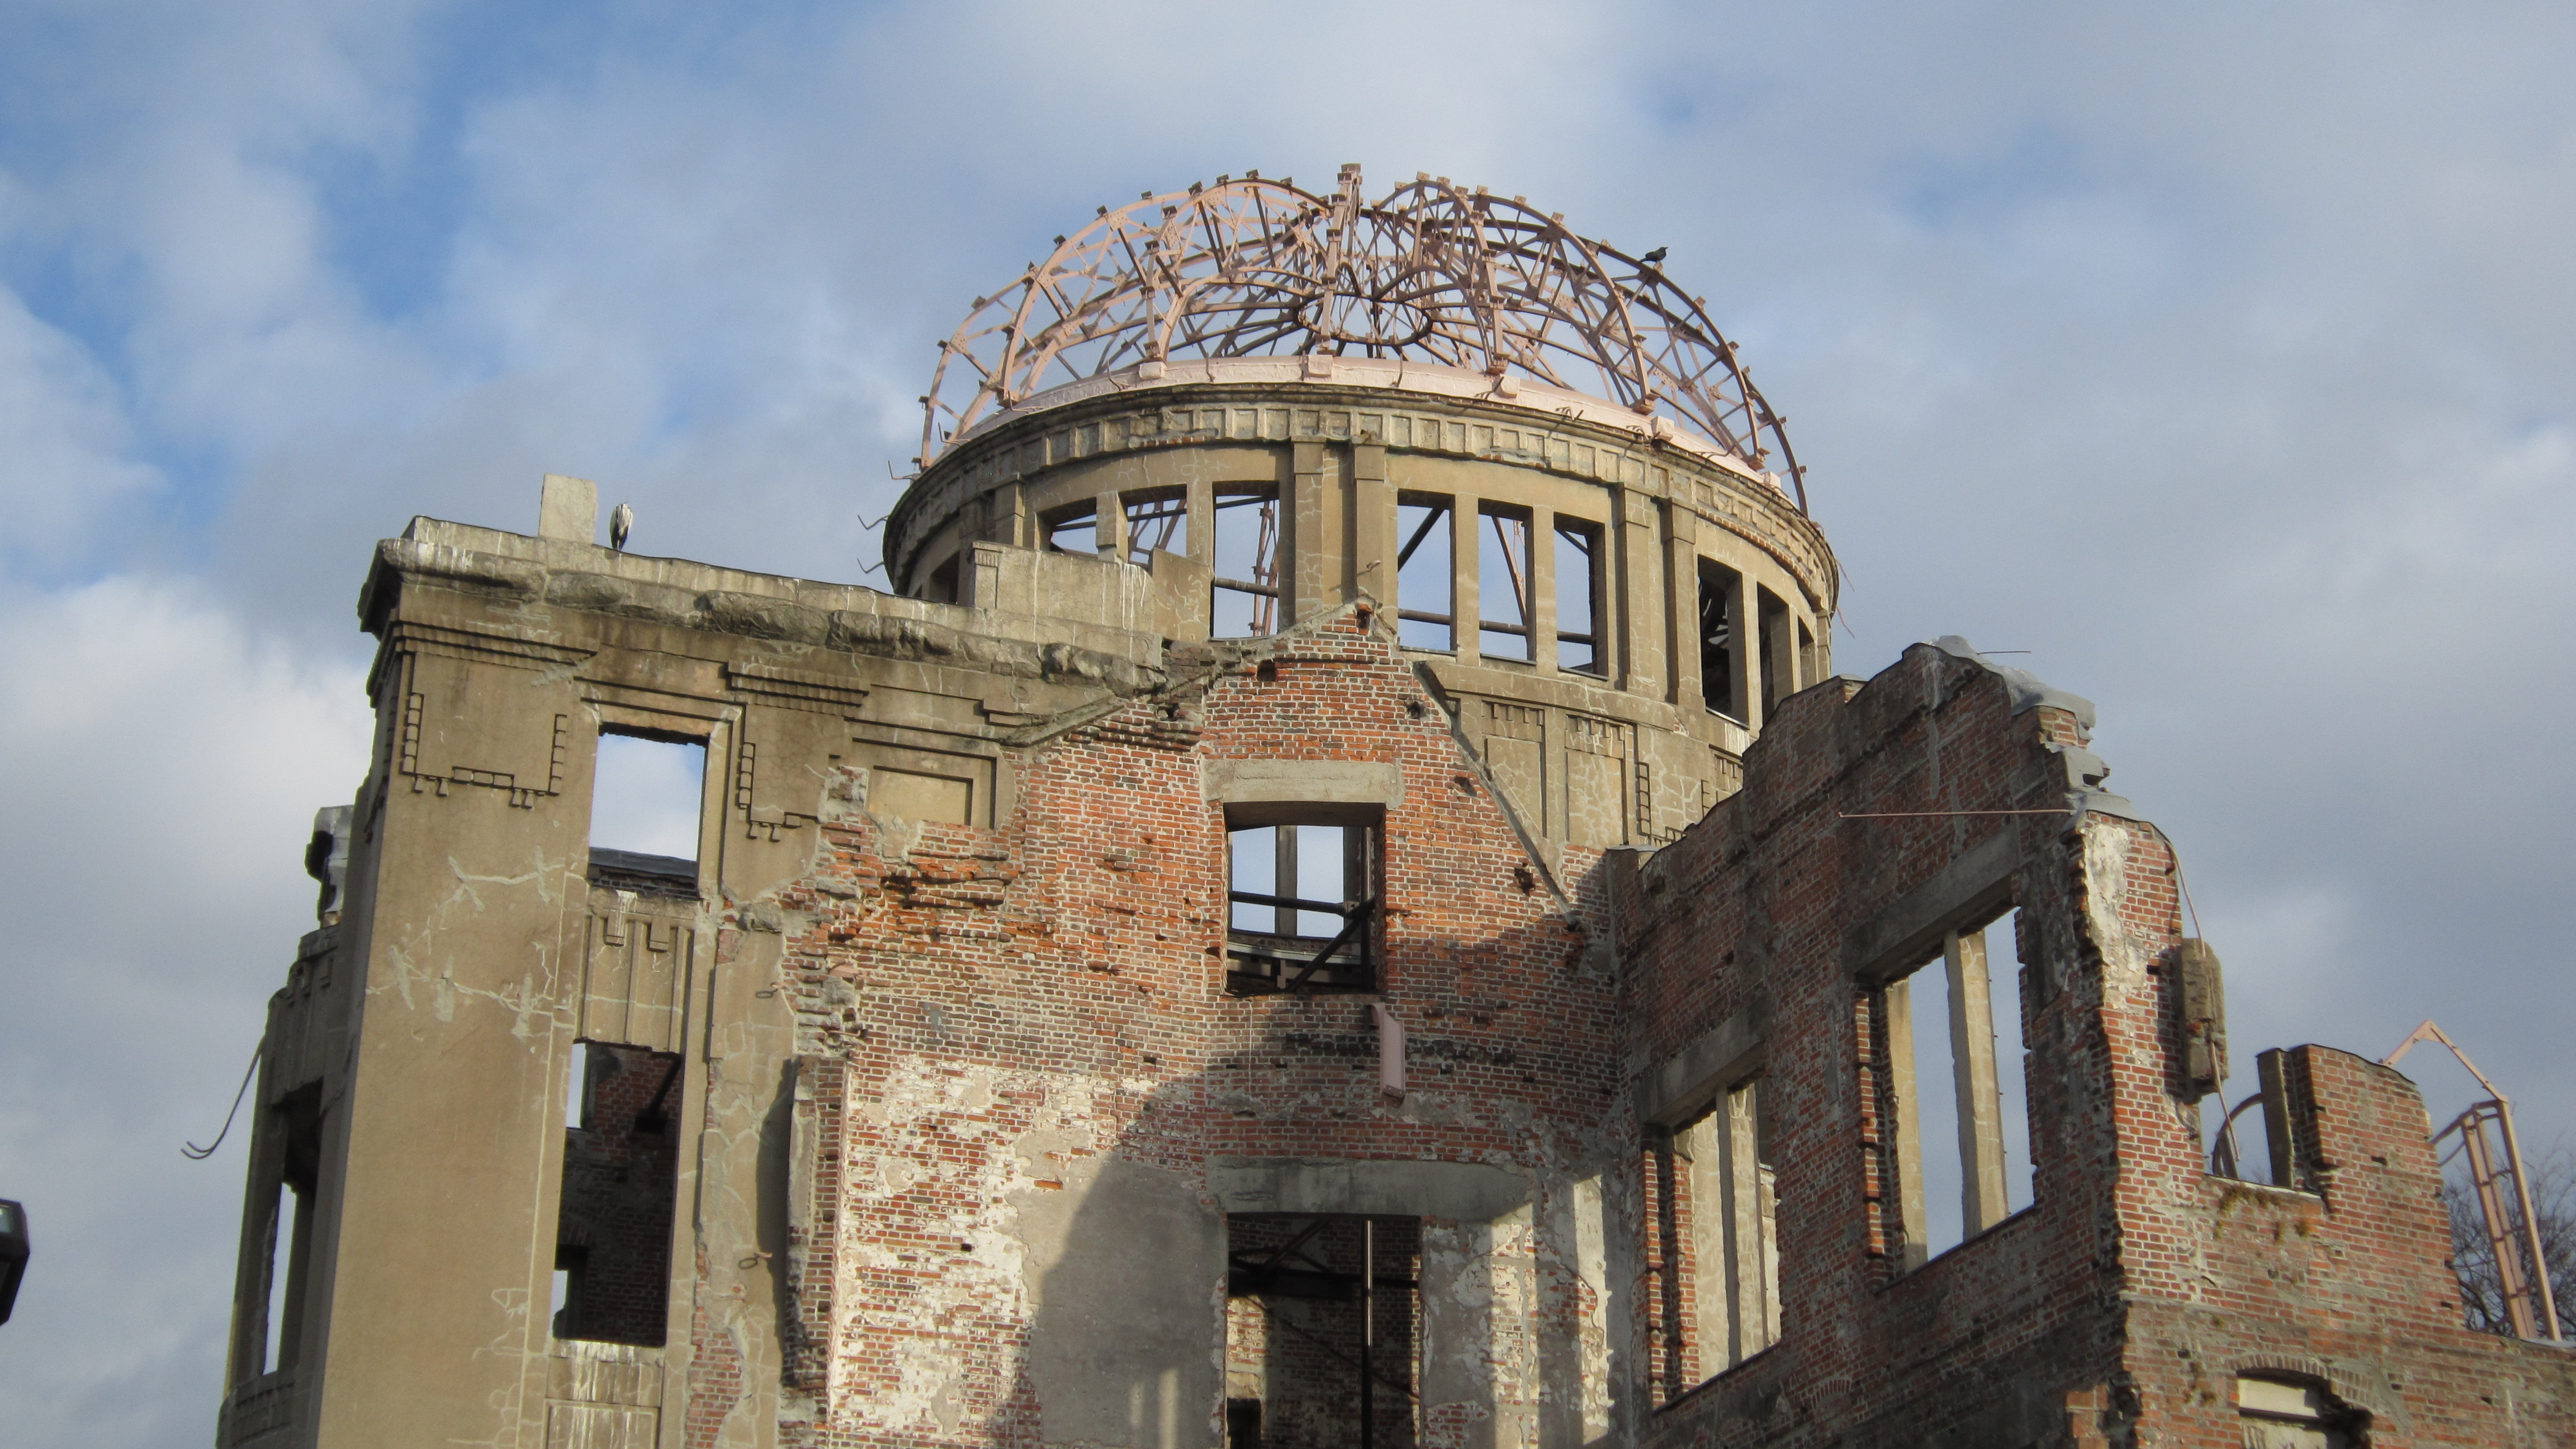 an introduction to the history of hiroshima japan On august 6, 1945, the us dropped an atomic bomb on hiroshima  japan   hiroshima peace memorial museum, the spirit of hiroshima: an introduction to.